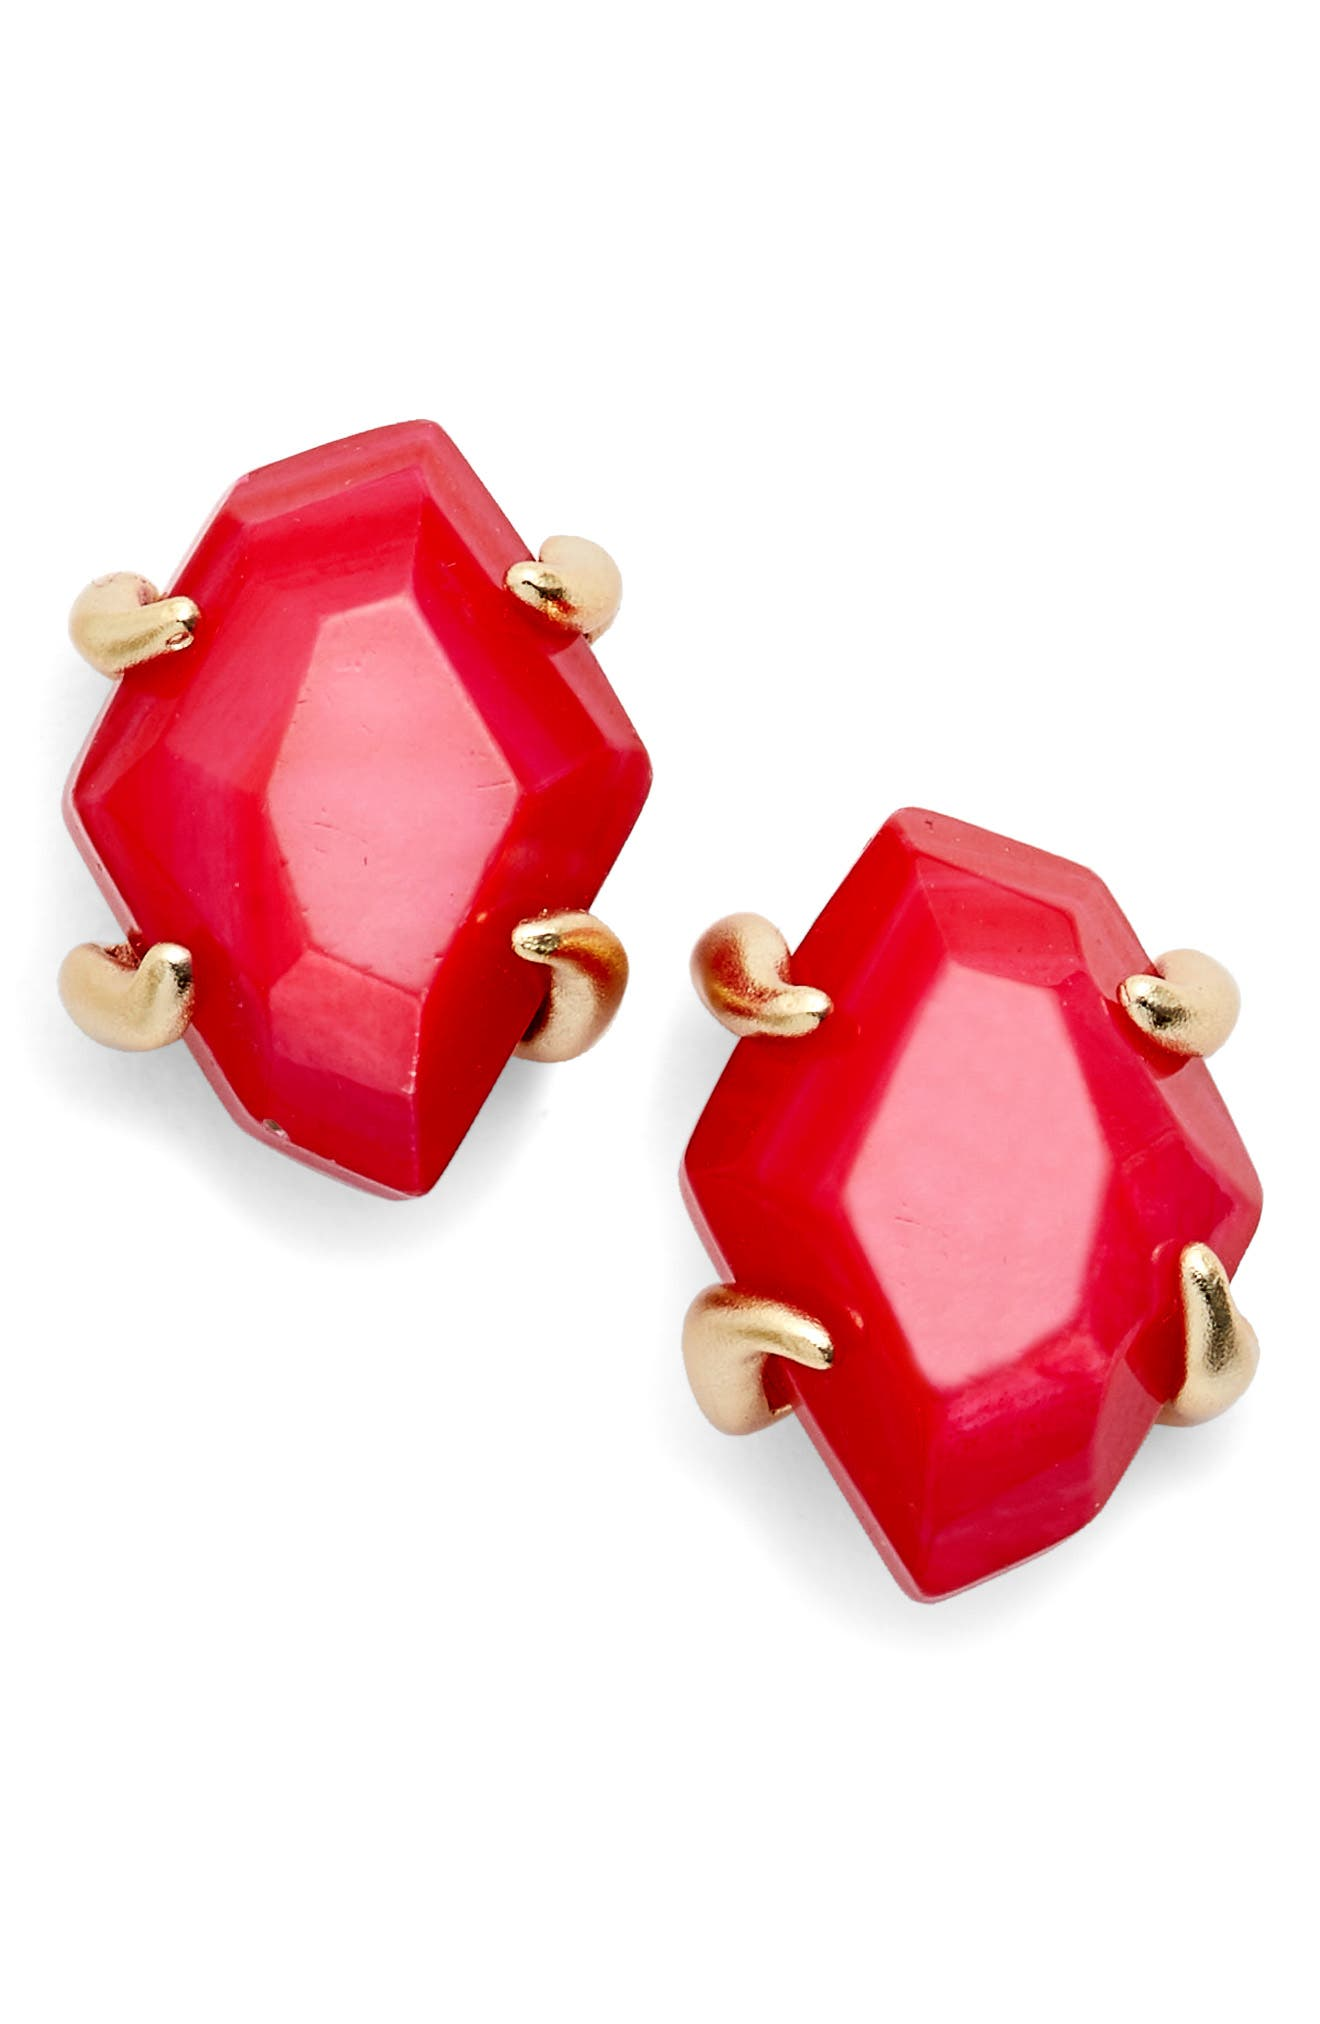 Kendra Scott Inaiyah Stud Earrings